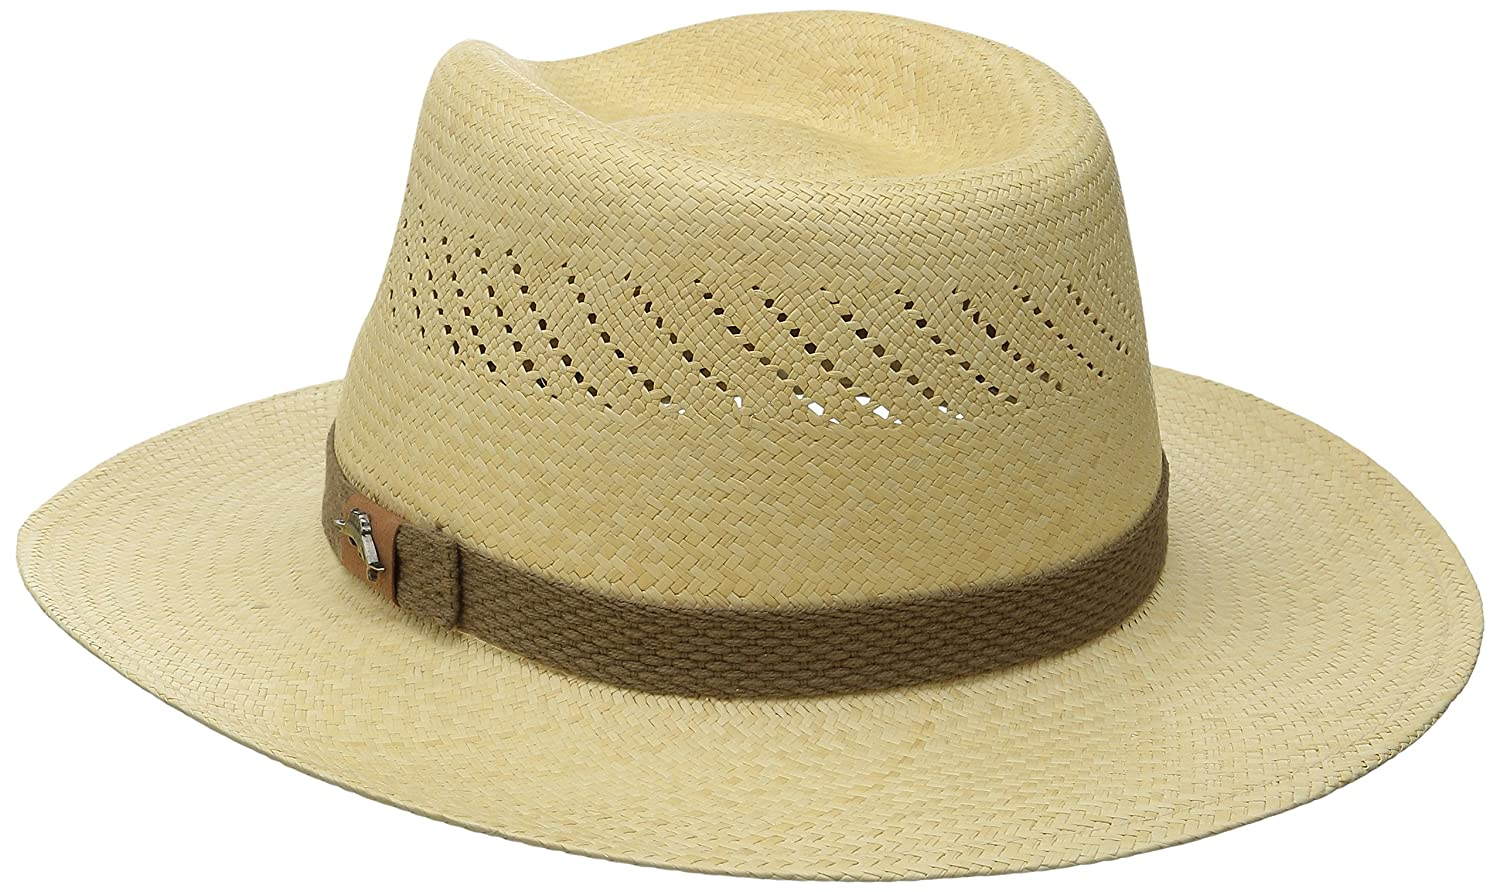 dd4d56c3379 Tommy Bahama Men s Panama Vent Outback Hat at Amazon Men s Clothing store